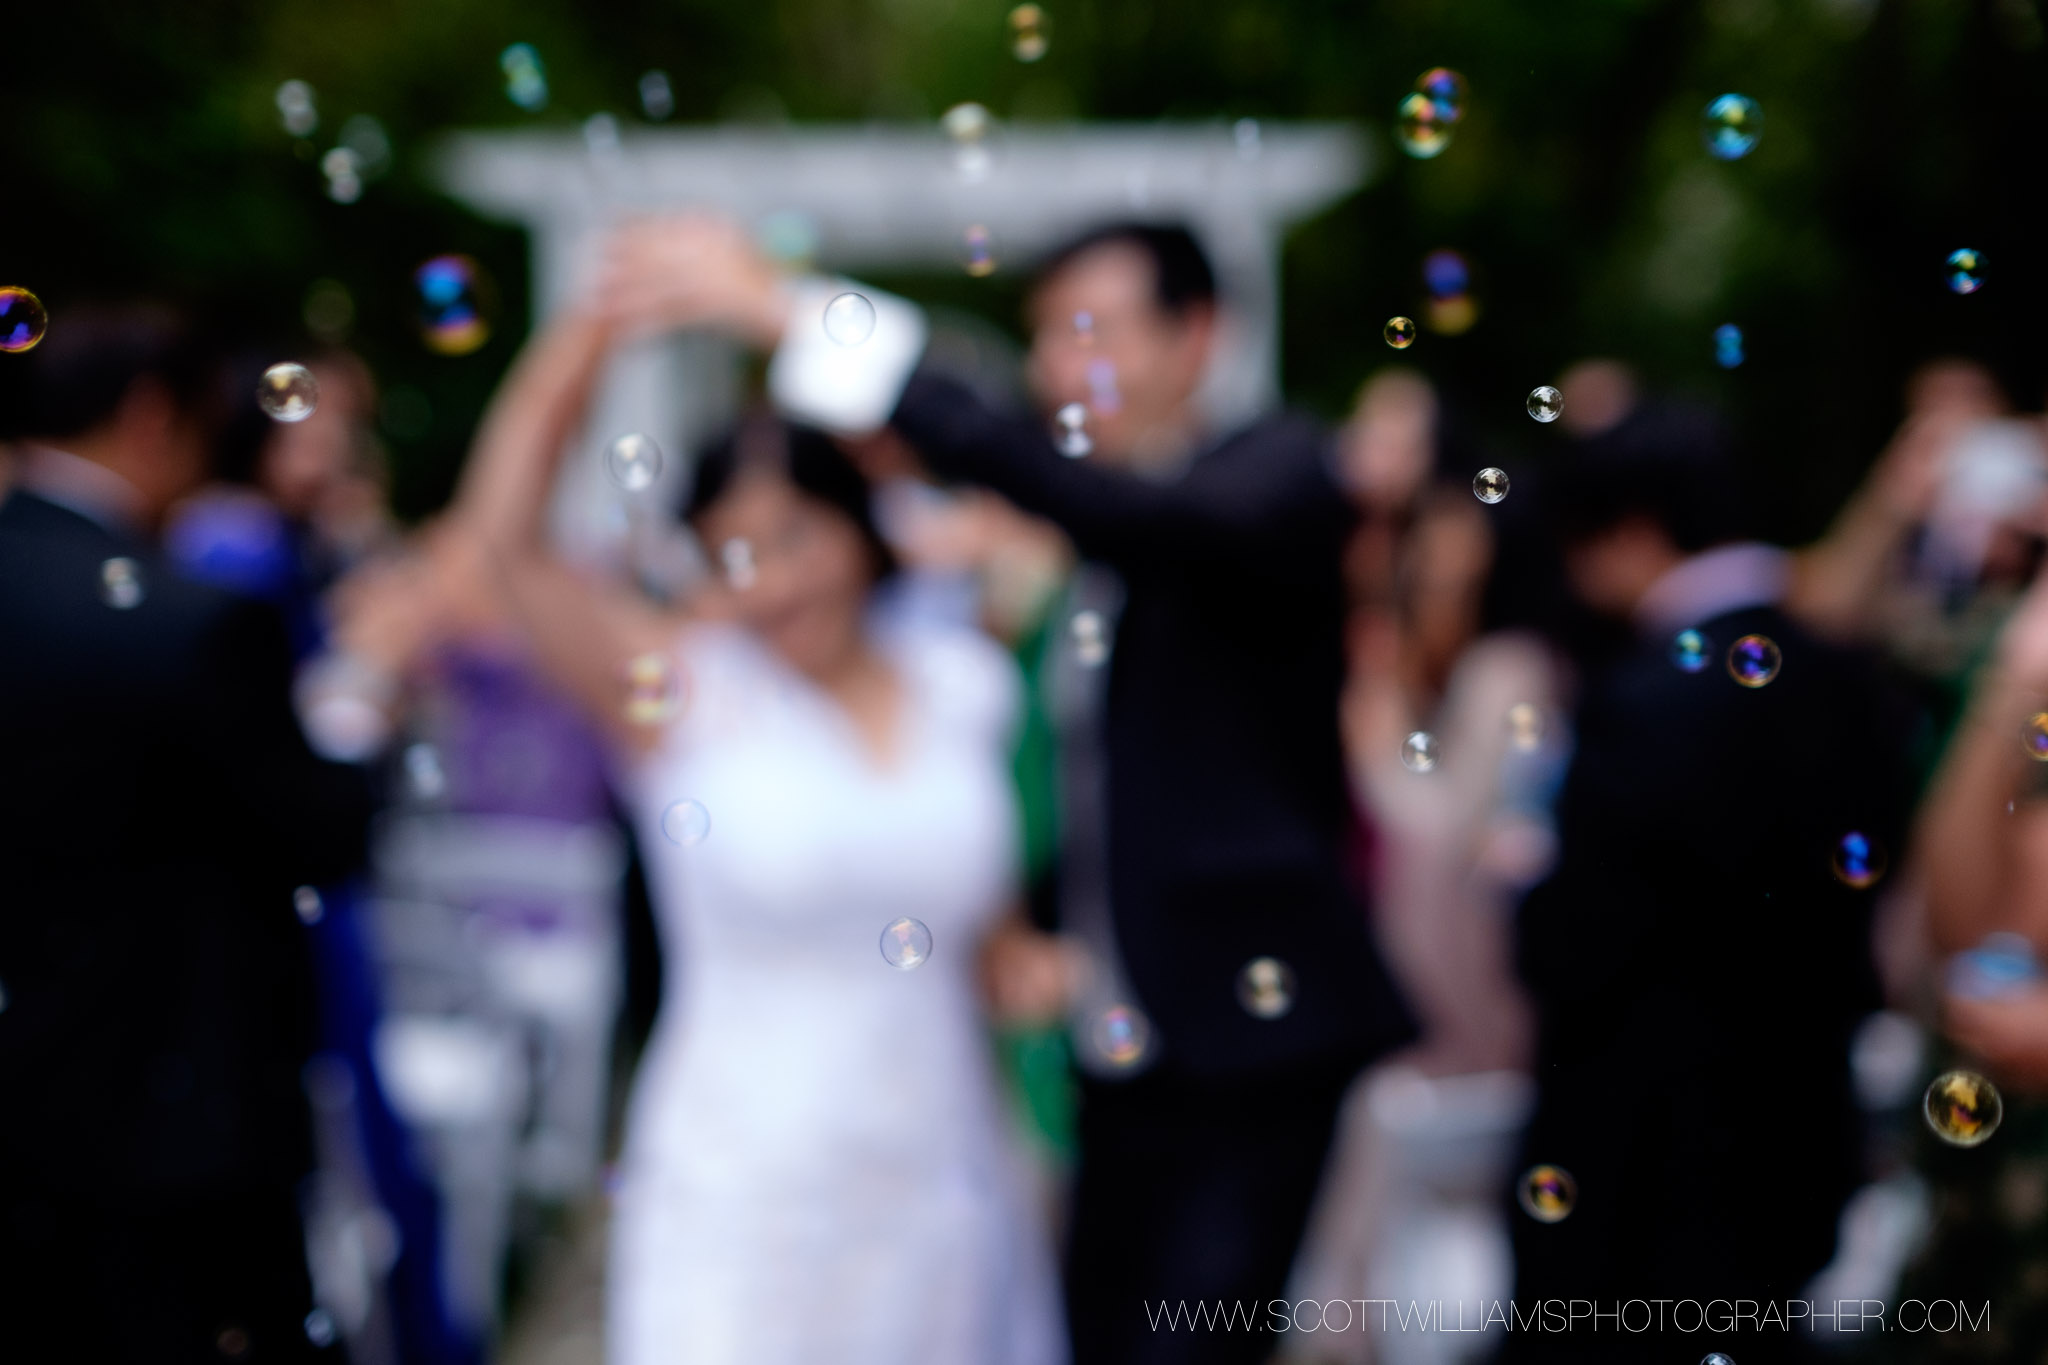 Guests blow bubbles as the bride and groom dance their way up the aisle after their outdoor wedding ceremony at the Ancaster Mill in Ancaster, Ontario.